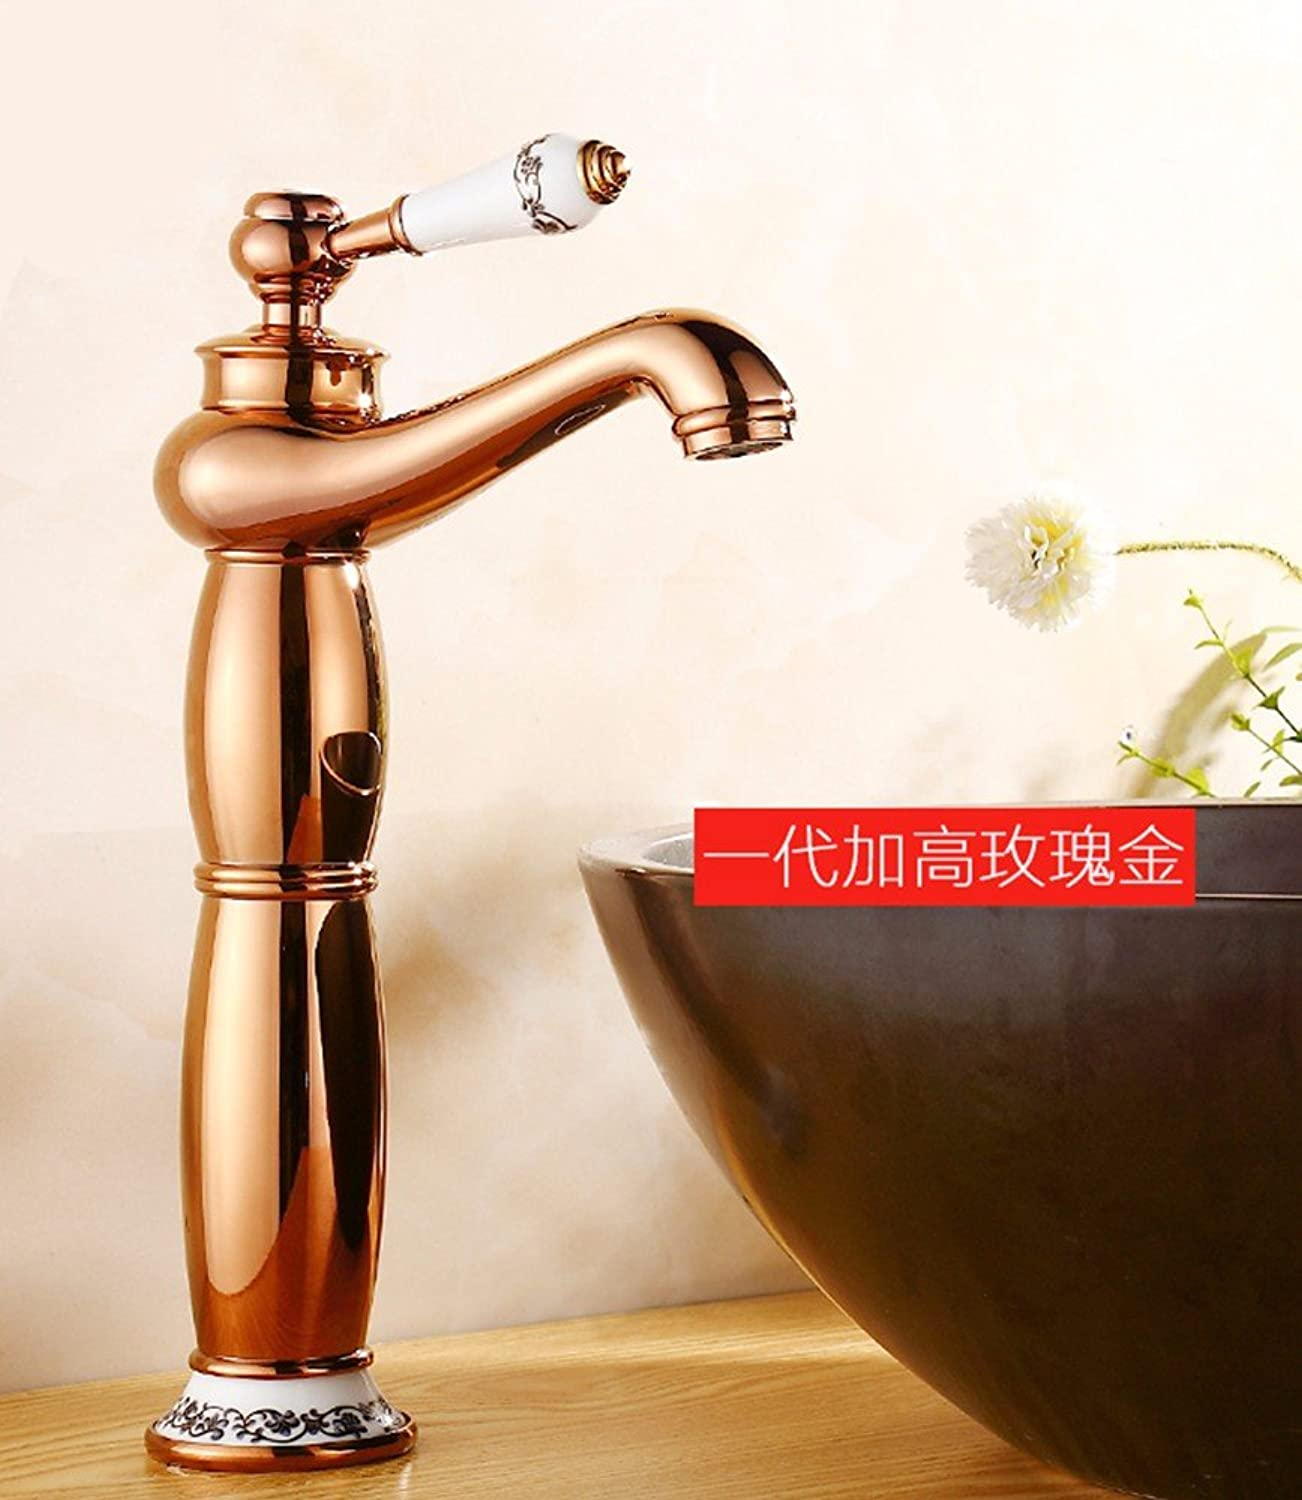 Hlluya Professional Sink Mixer Tap Kitchen Faucet Hot and cold, the basin, plus high, the tap 7